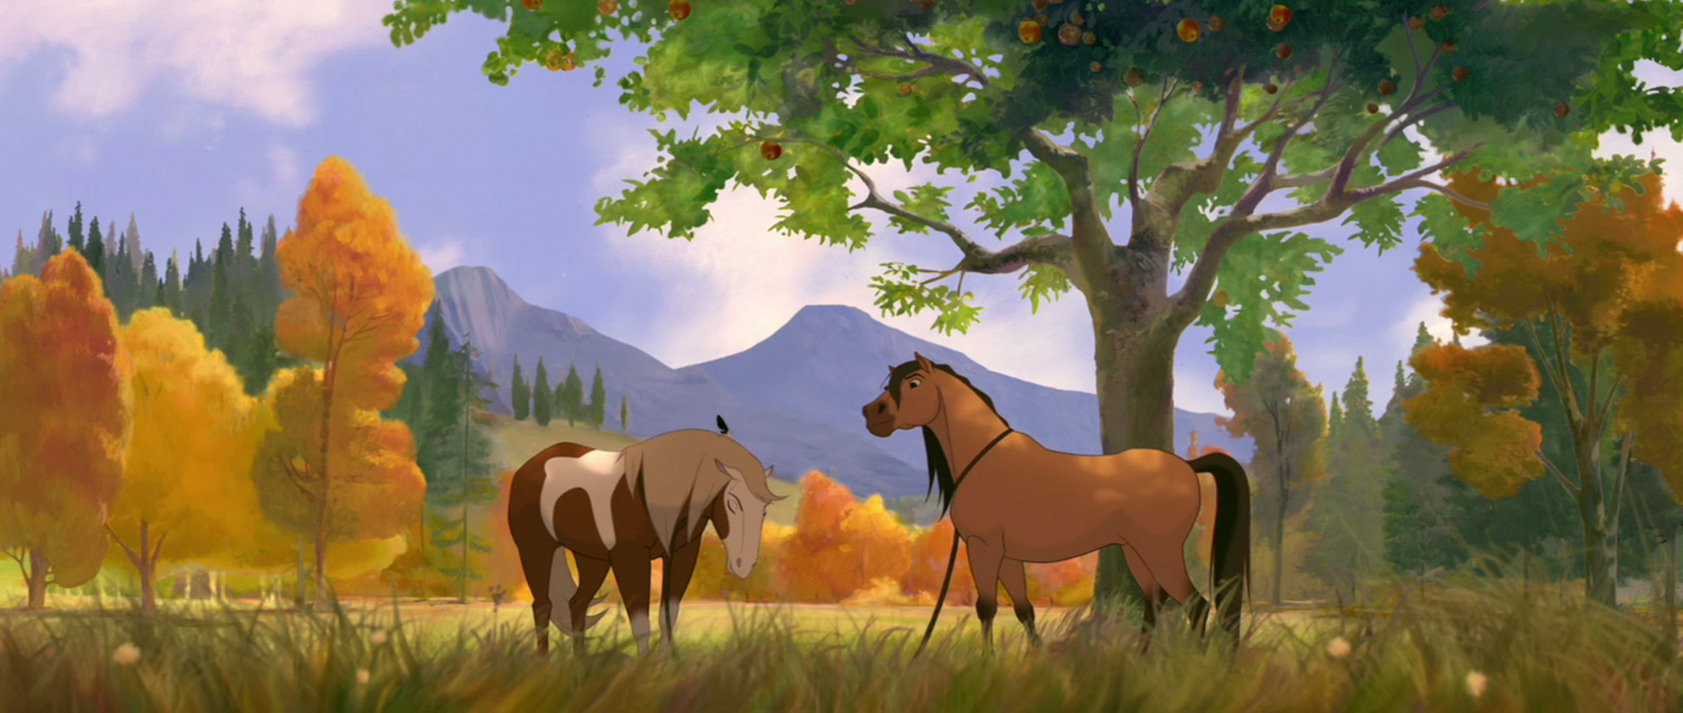 spirit In a small western town, spunky ex-city girl lucky forms a tight bond with wild horse spirit while having adventures with best pals pru and abigail watch trailers.